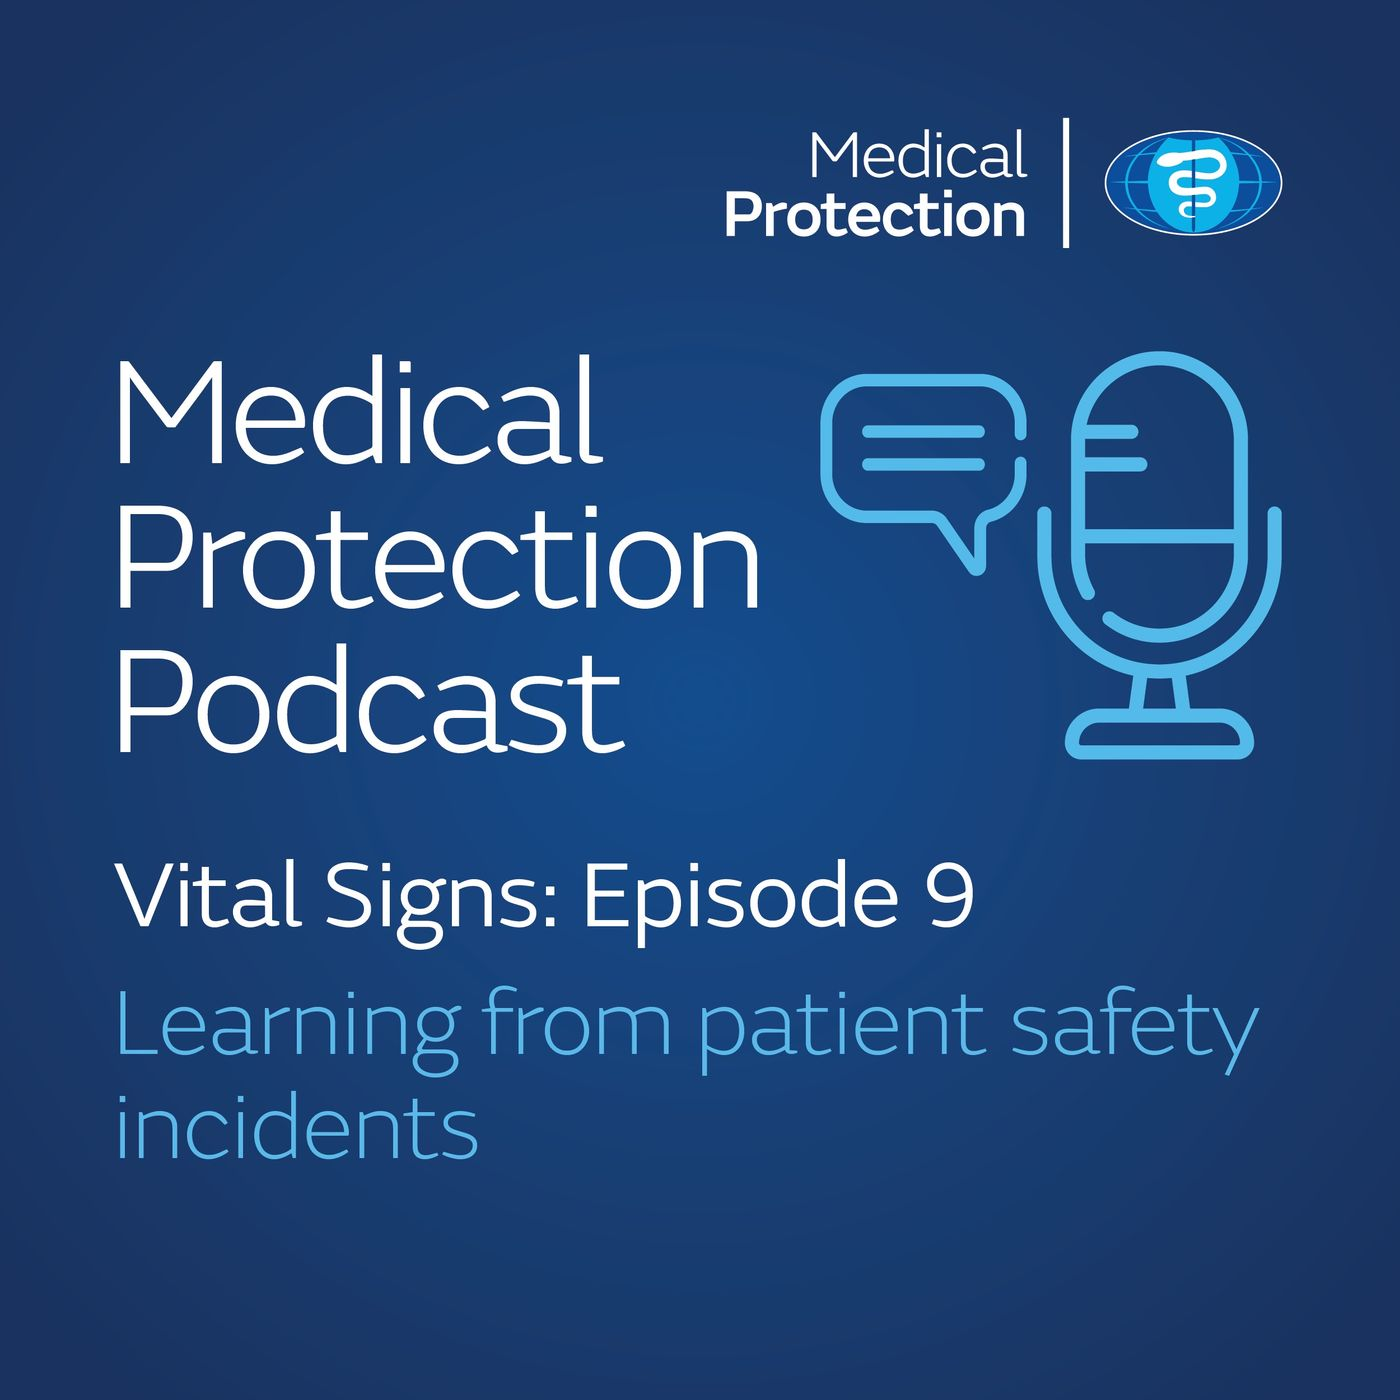 Vital signs episode 9: Learning from patient safety incidents